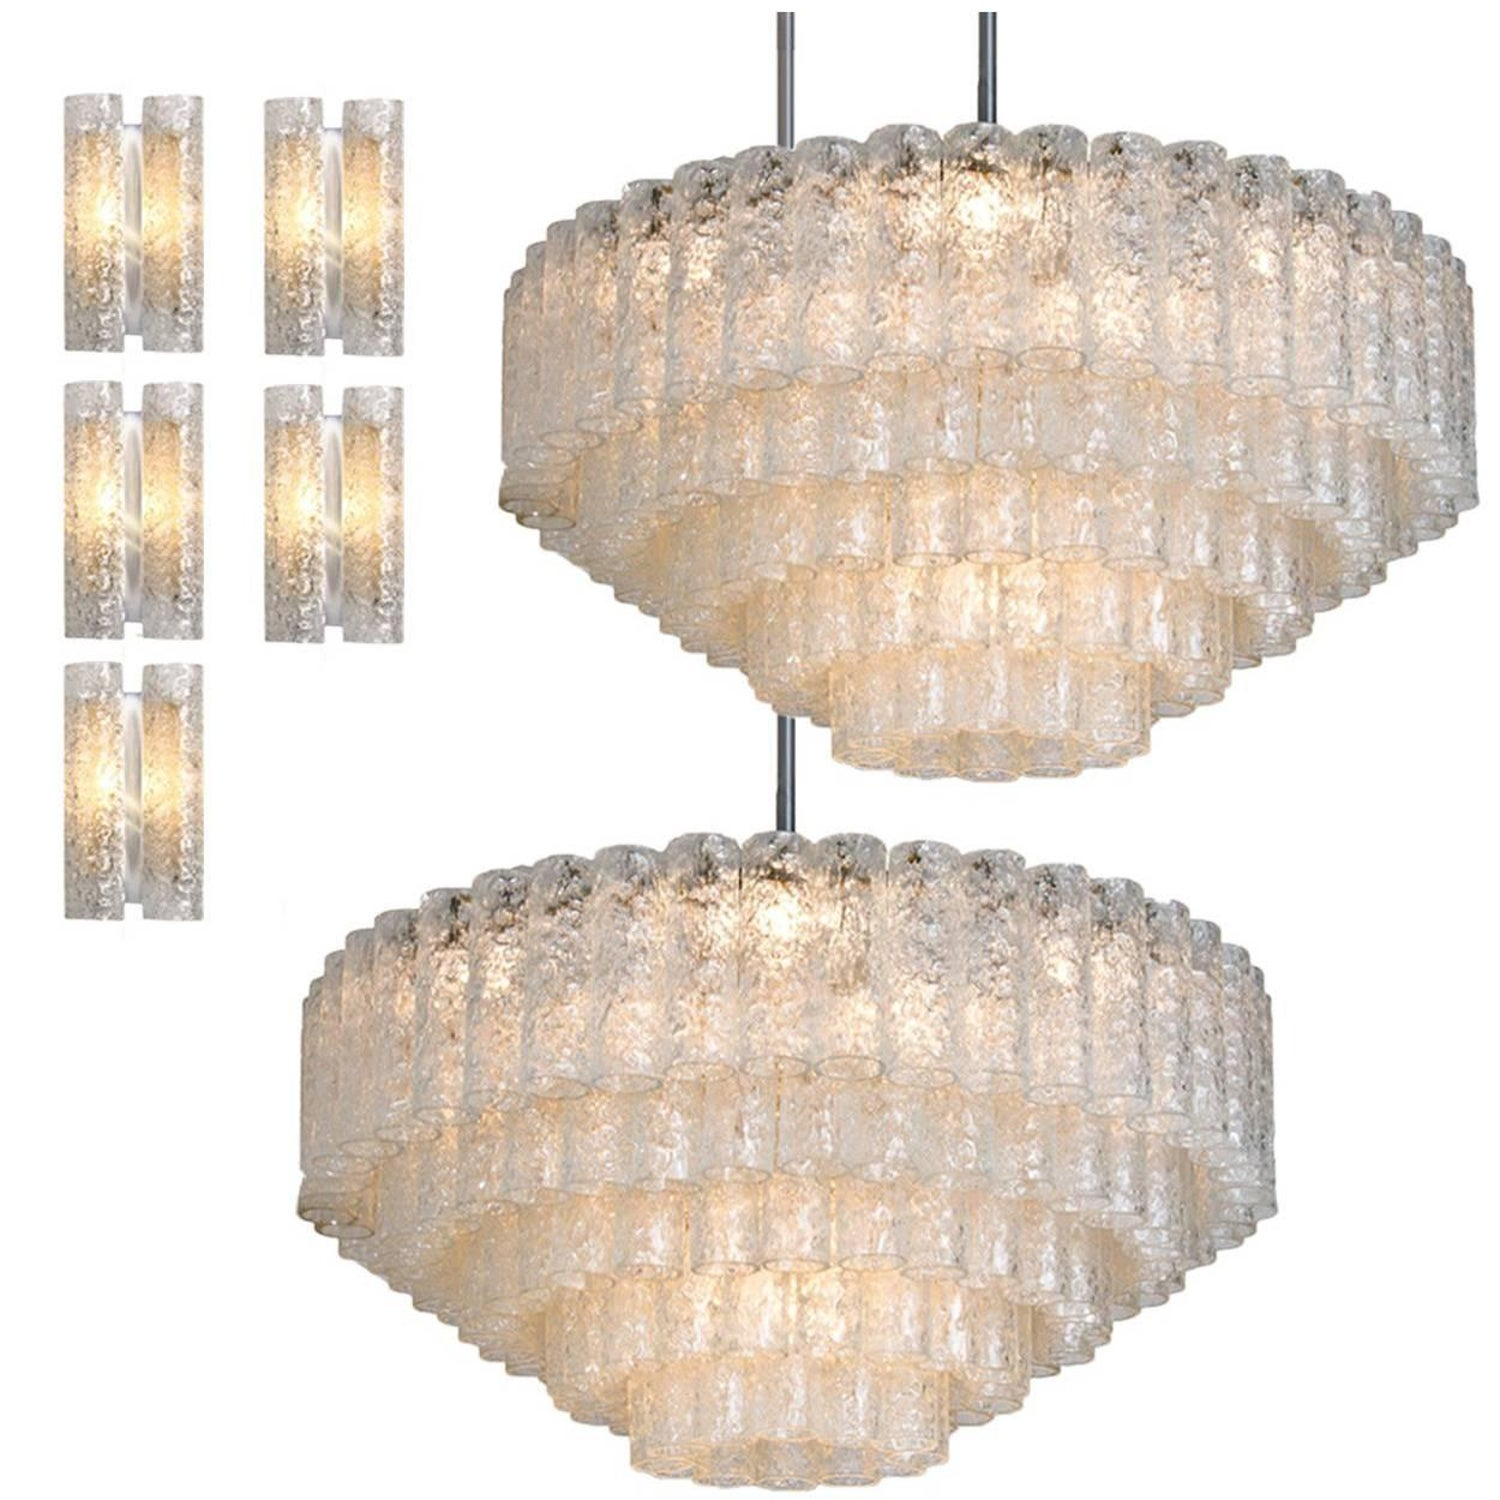 Set of Huge Doria Giant Ballroom Light Fixtures 2 Chandelier and